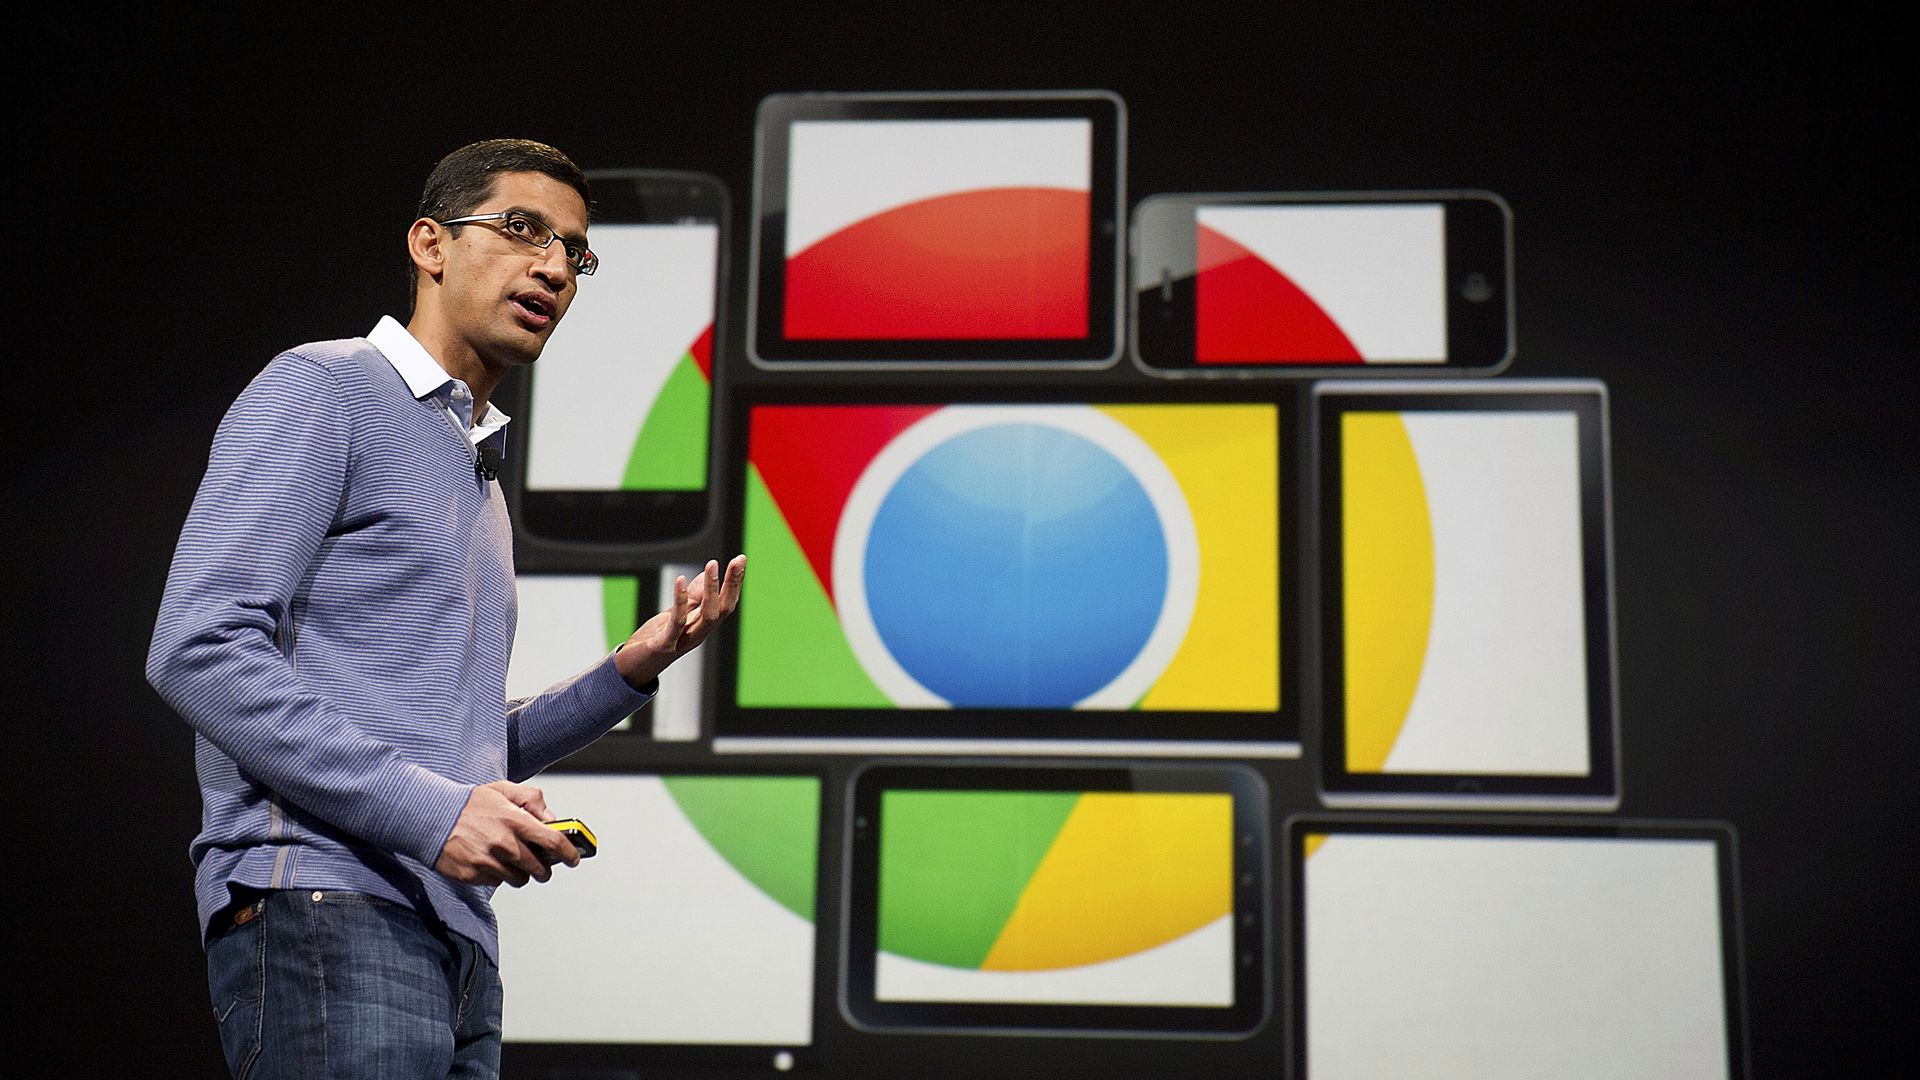 Exclusive: 1% of publishers initially affected by Chrome ad